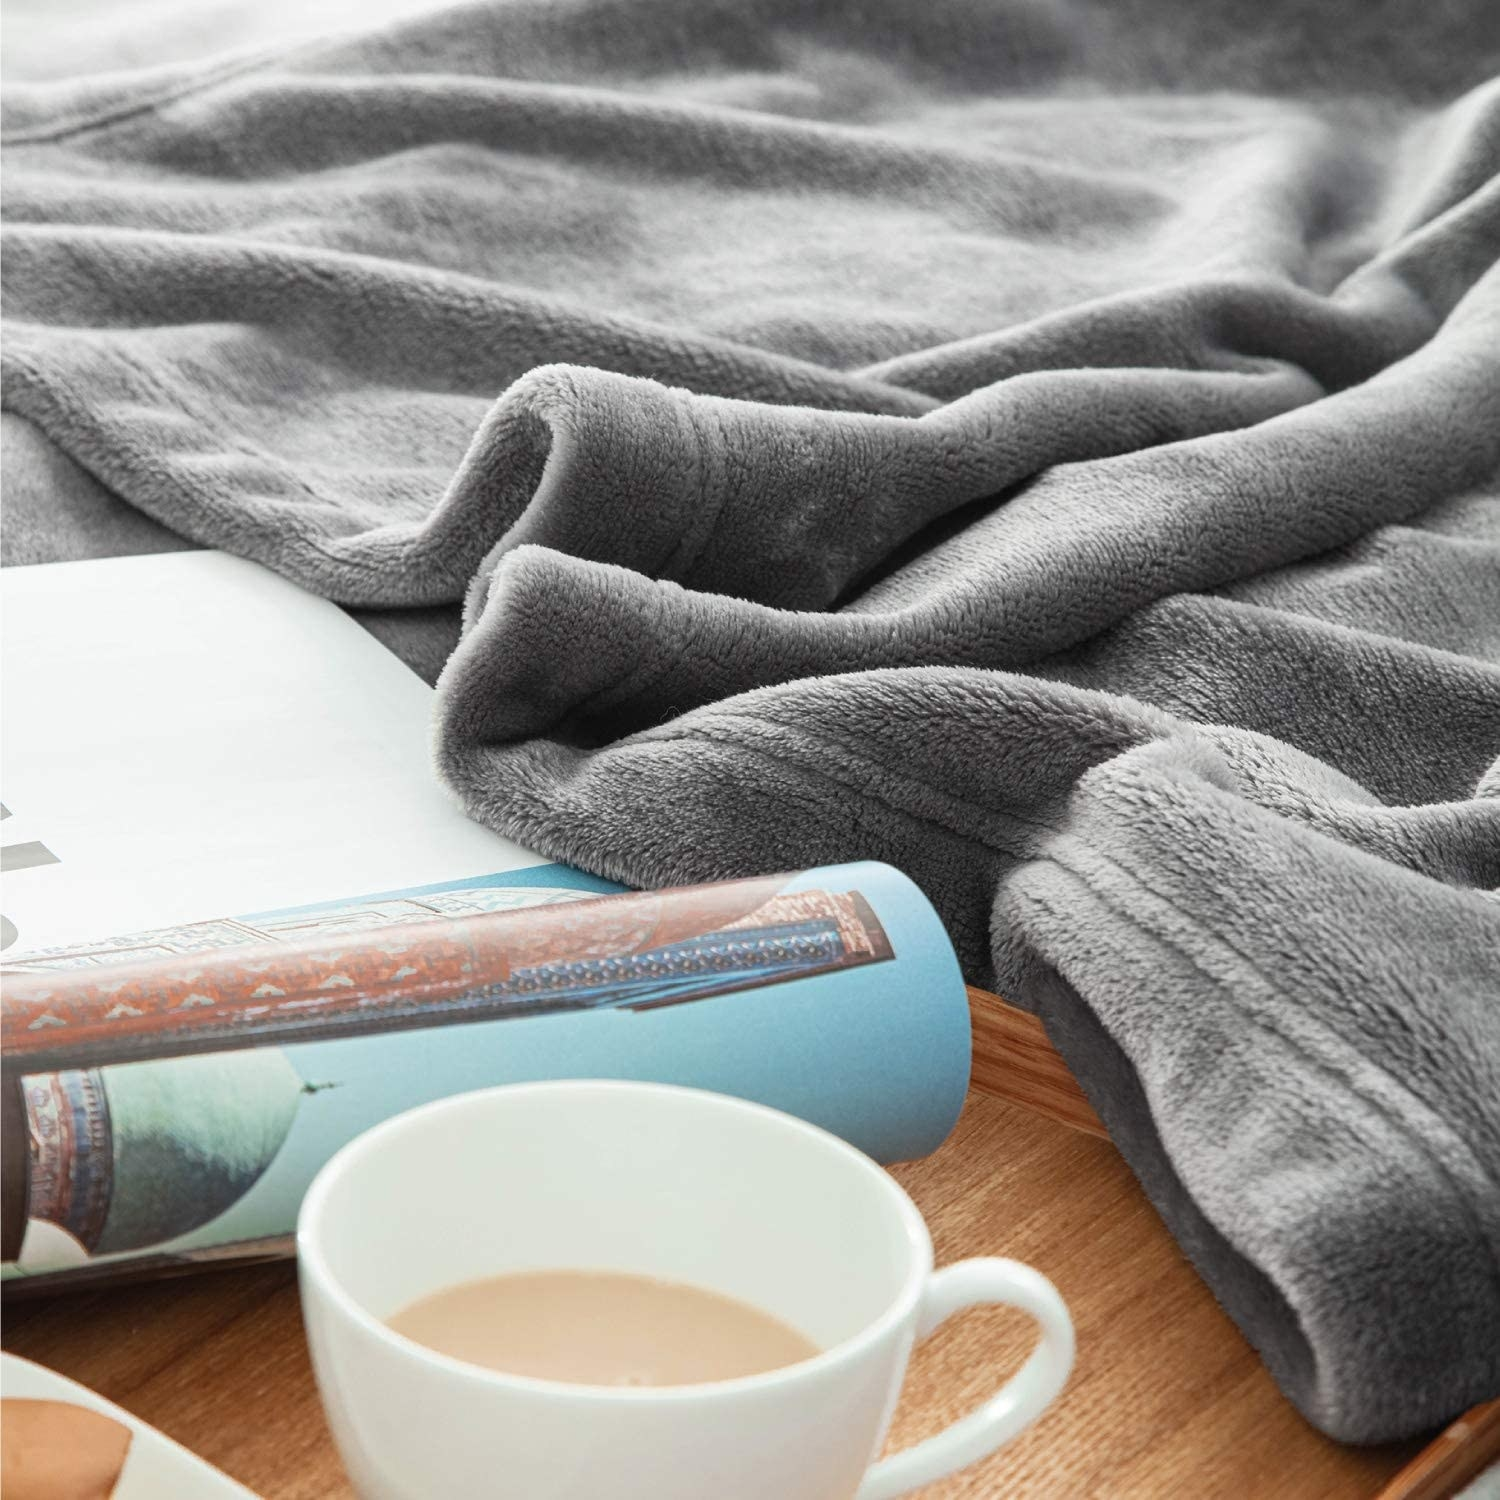 the blanket next to a book and cup